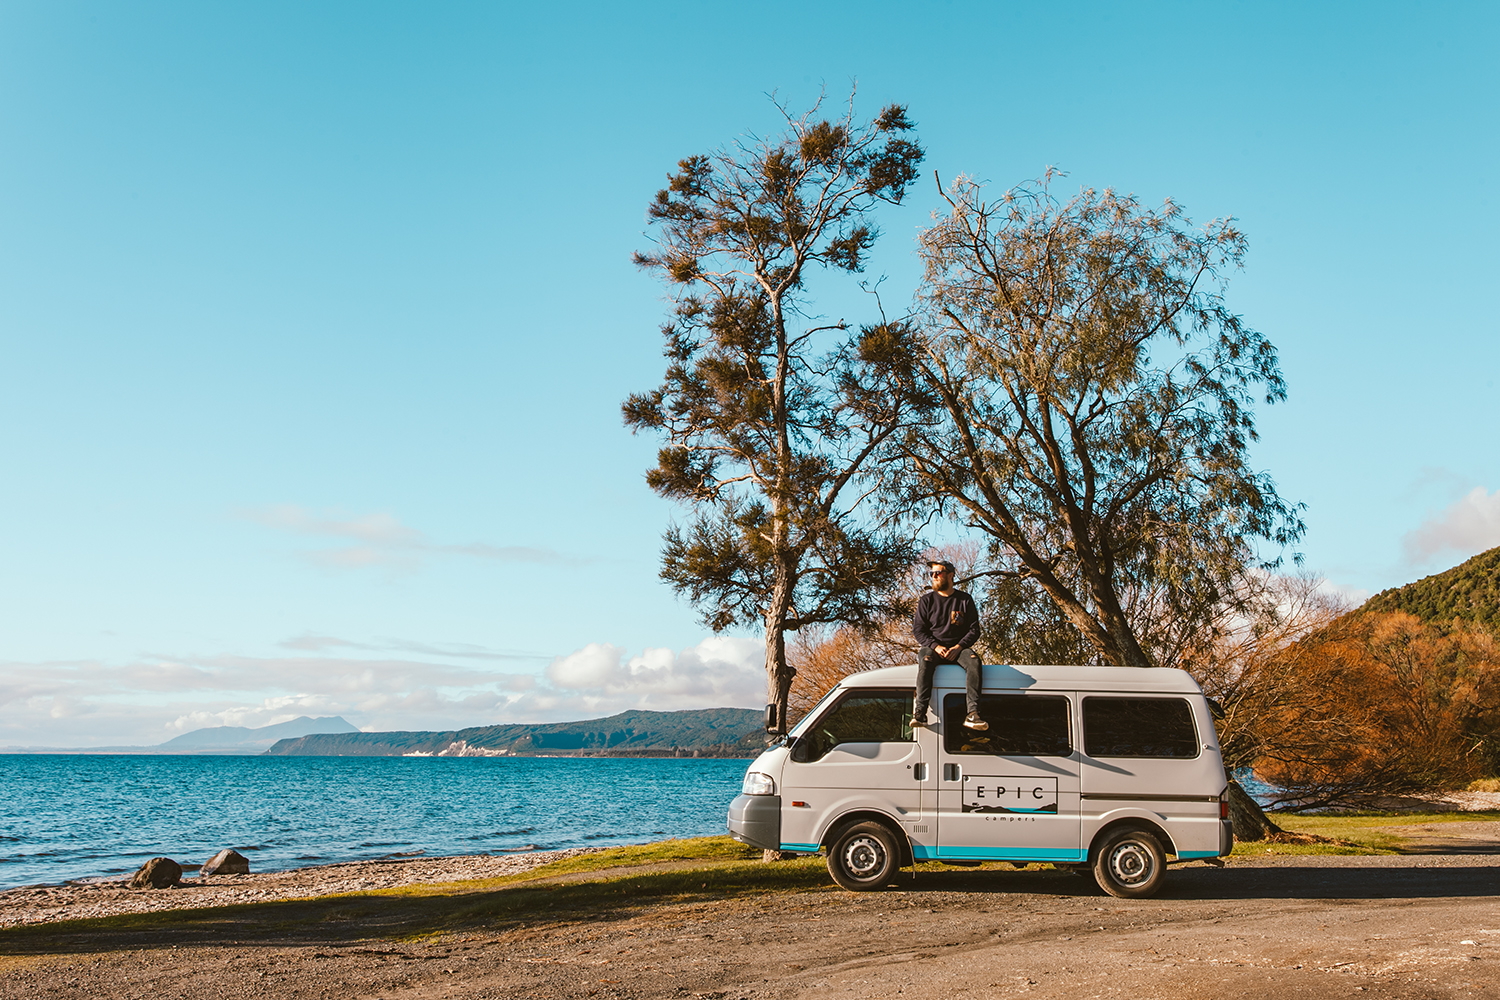 Zach & our Epic Camper at the shore of Lake Taupo